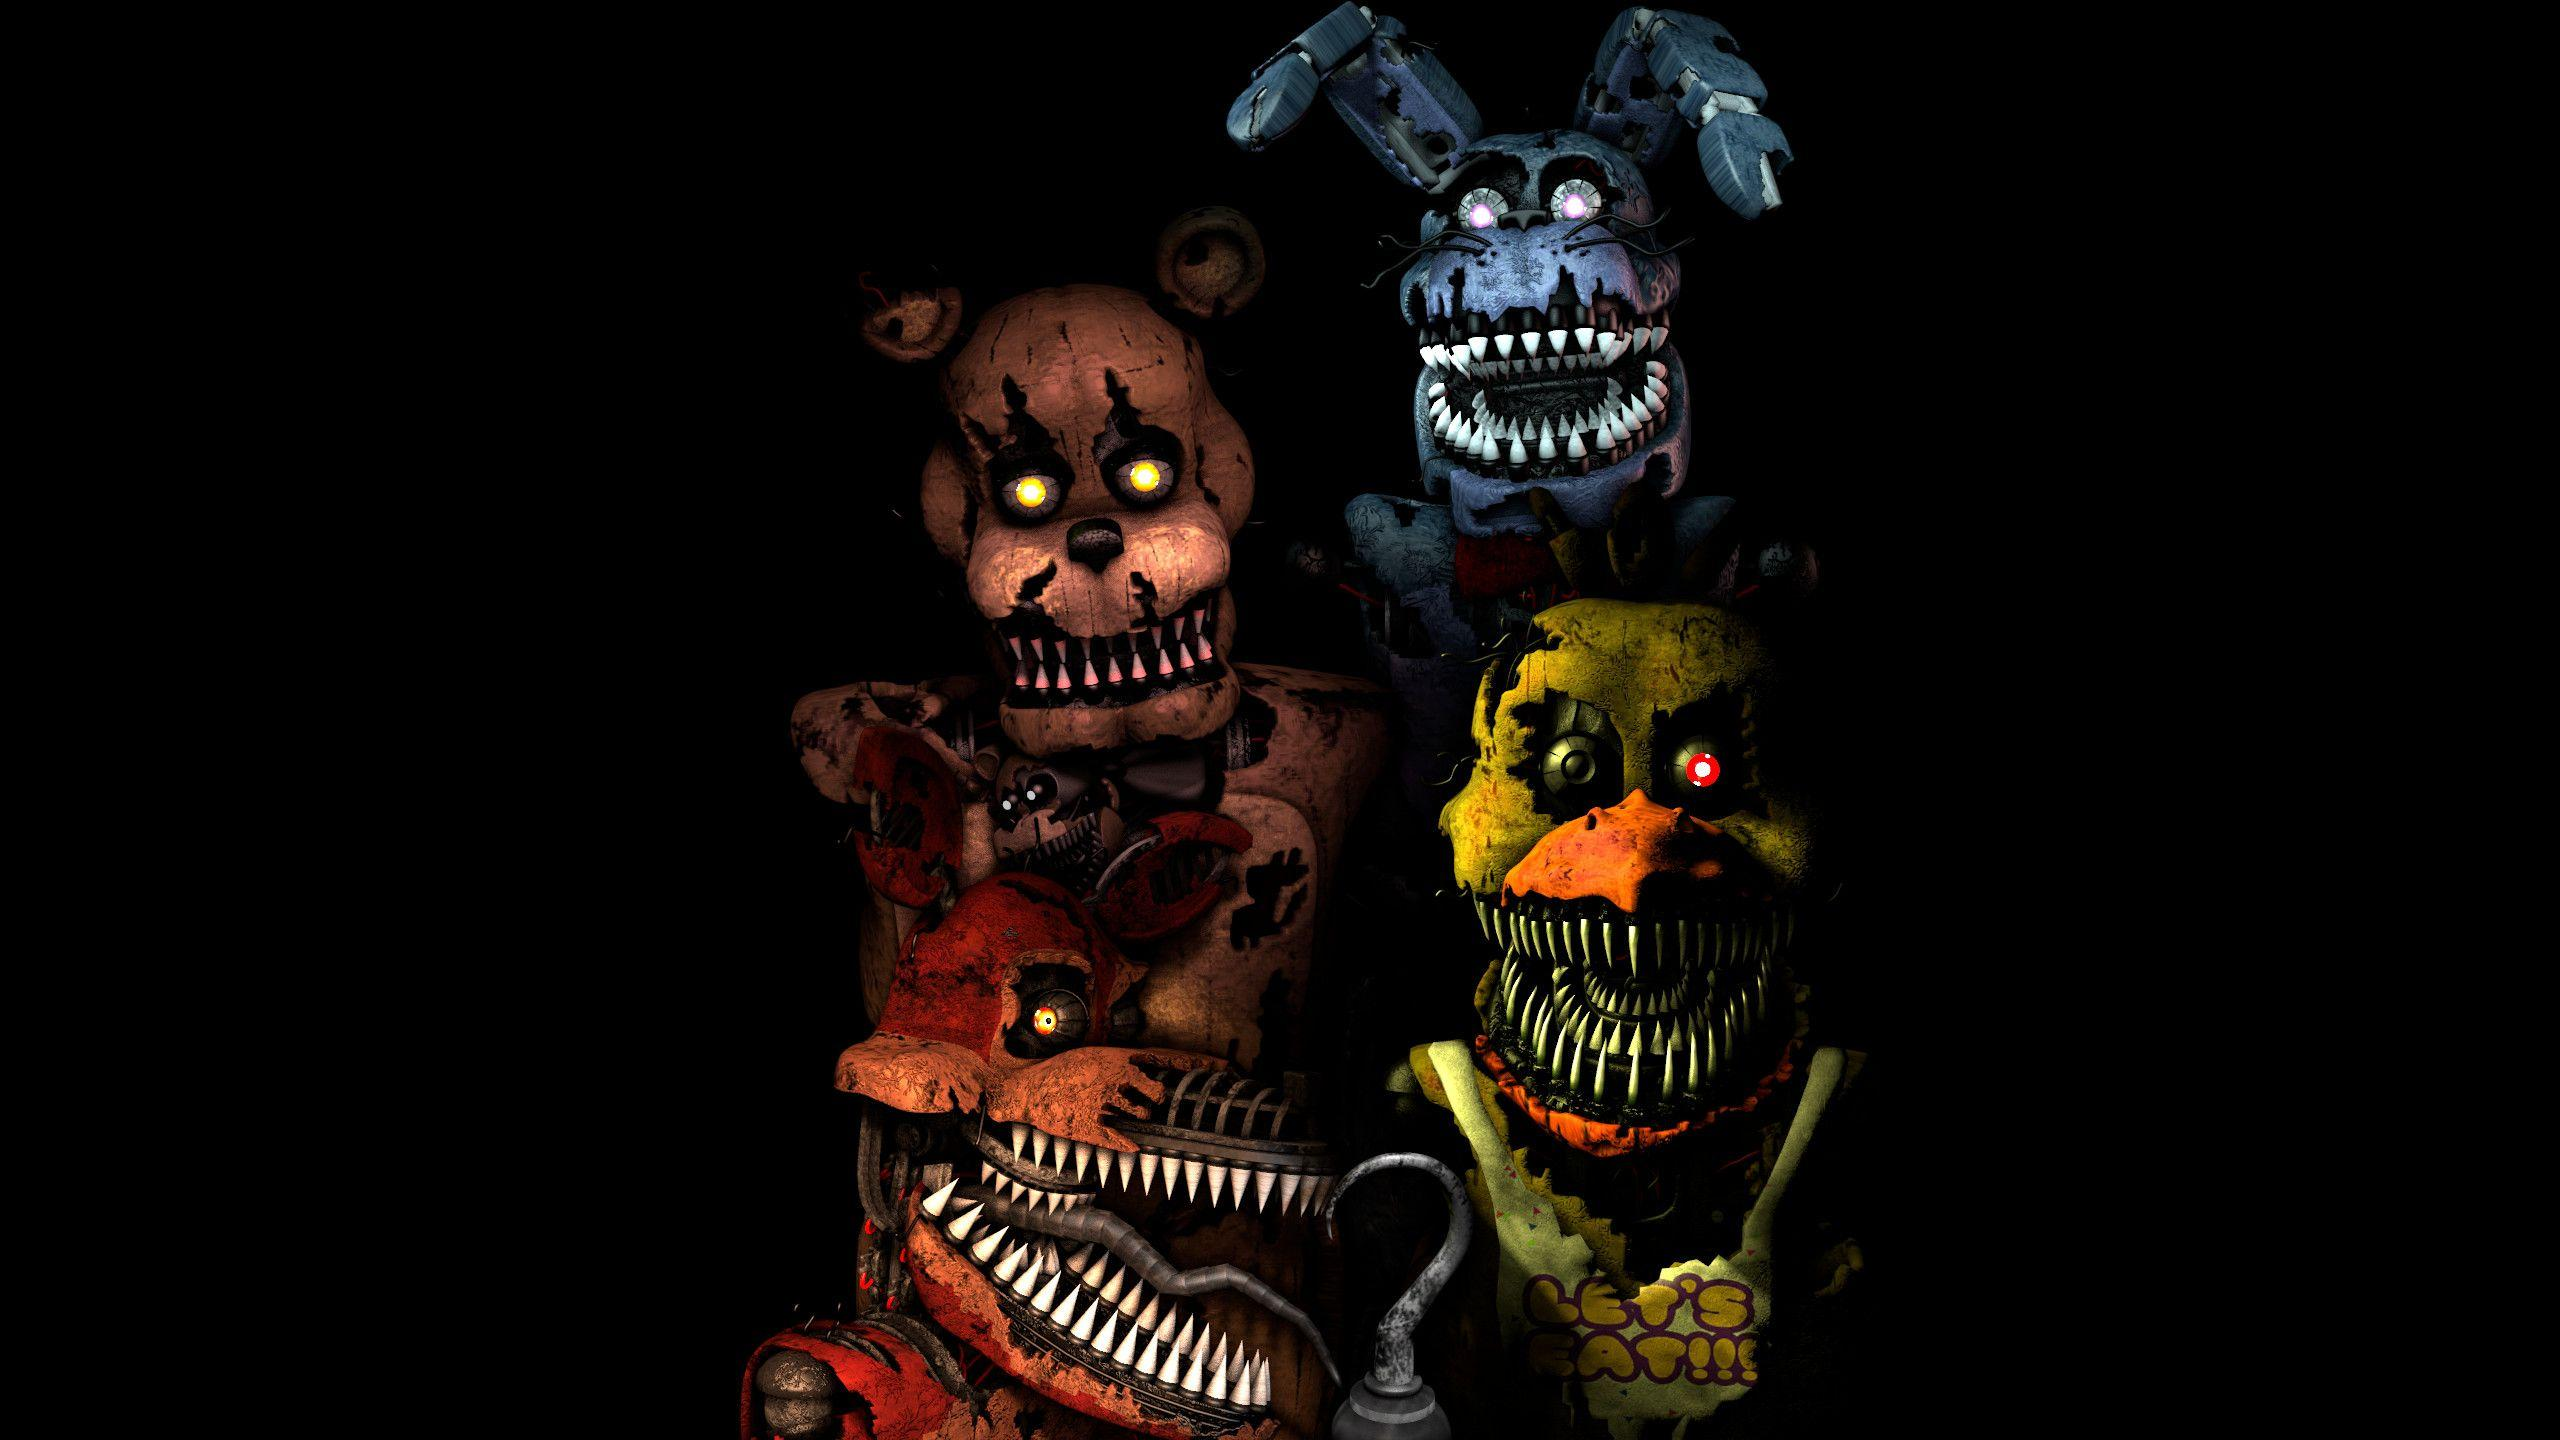 FNAF 6 Songs for Android - APK Download - APKPure.com